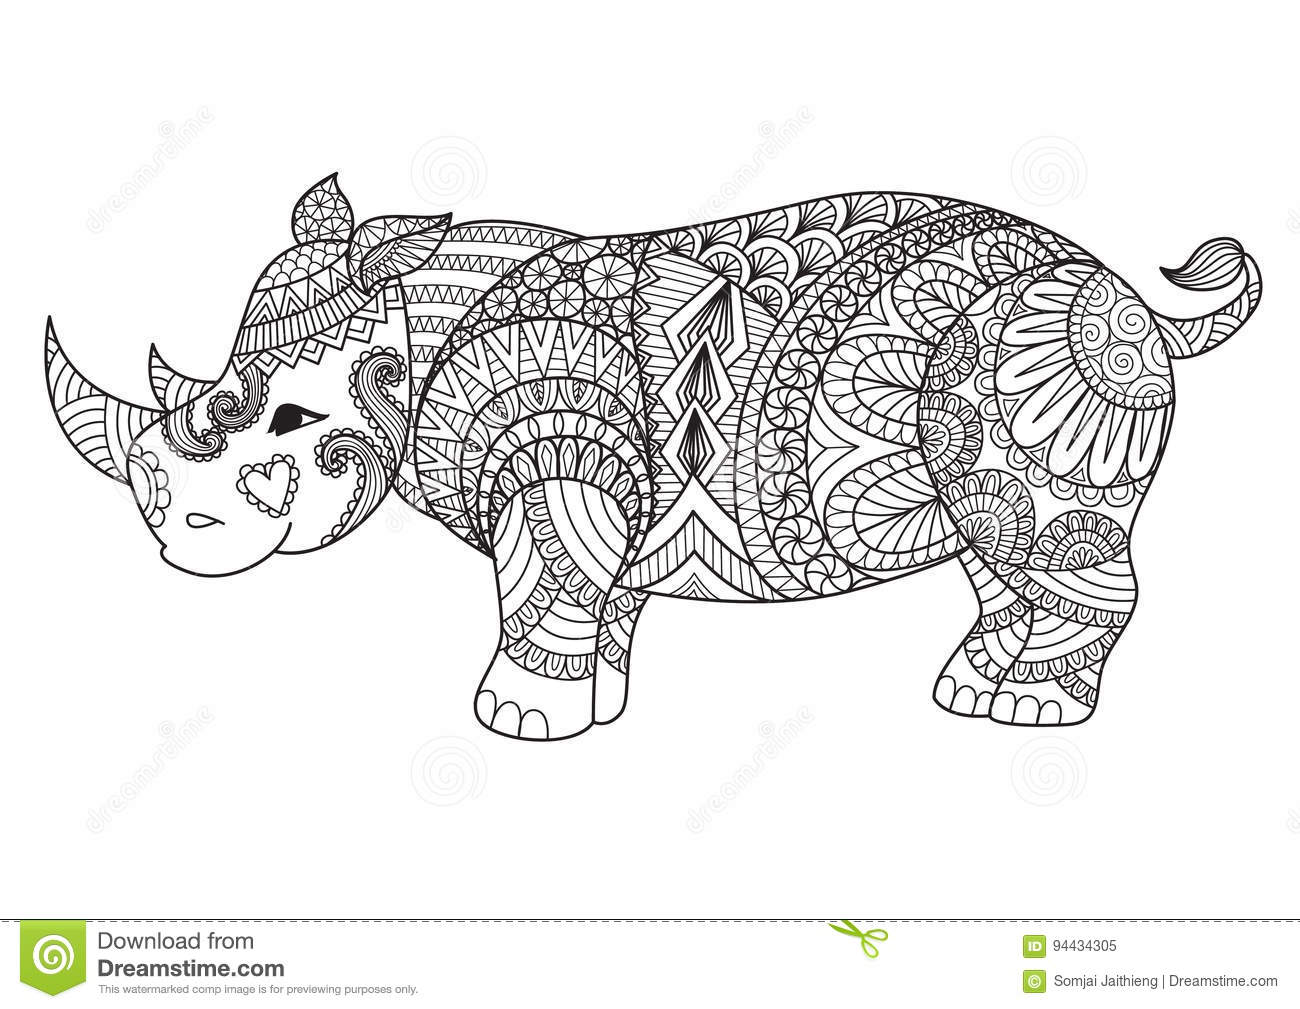 Drawing Zentangle Rhino For Coloring Page Shirt Design Effect Logo